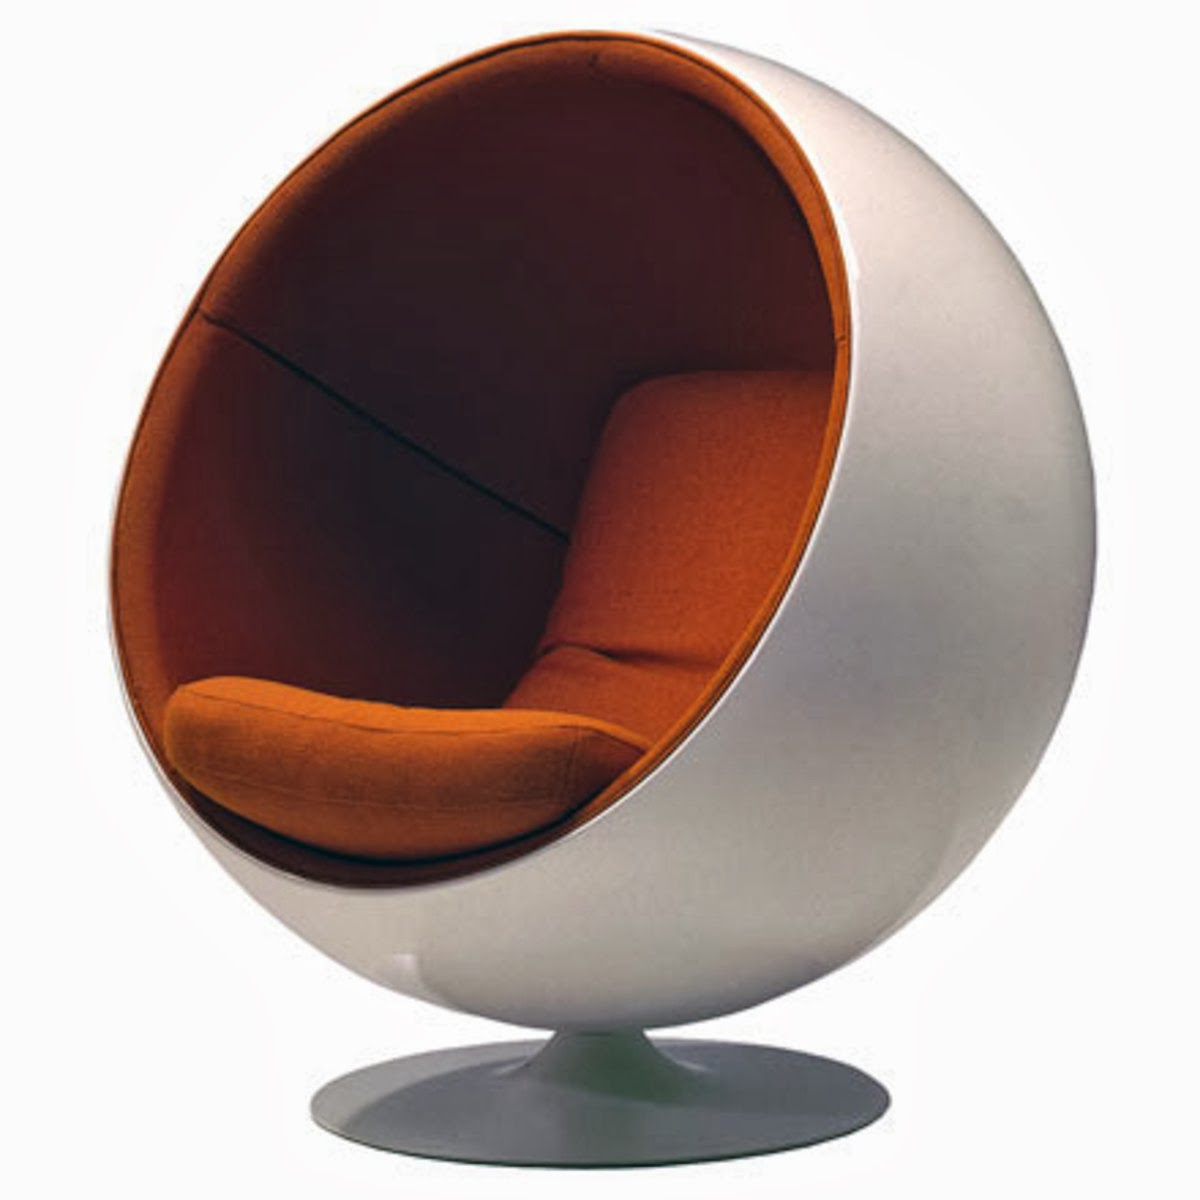 Round Cushion Chair Viewing Gallery